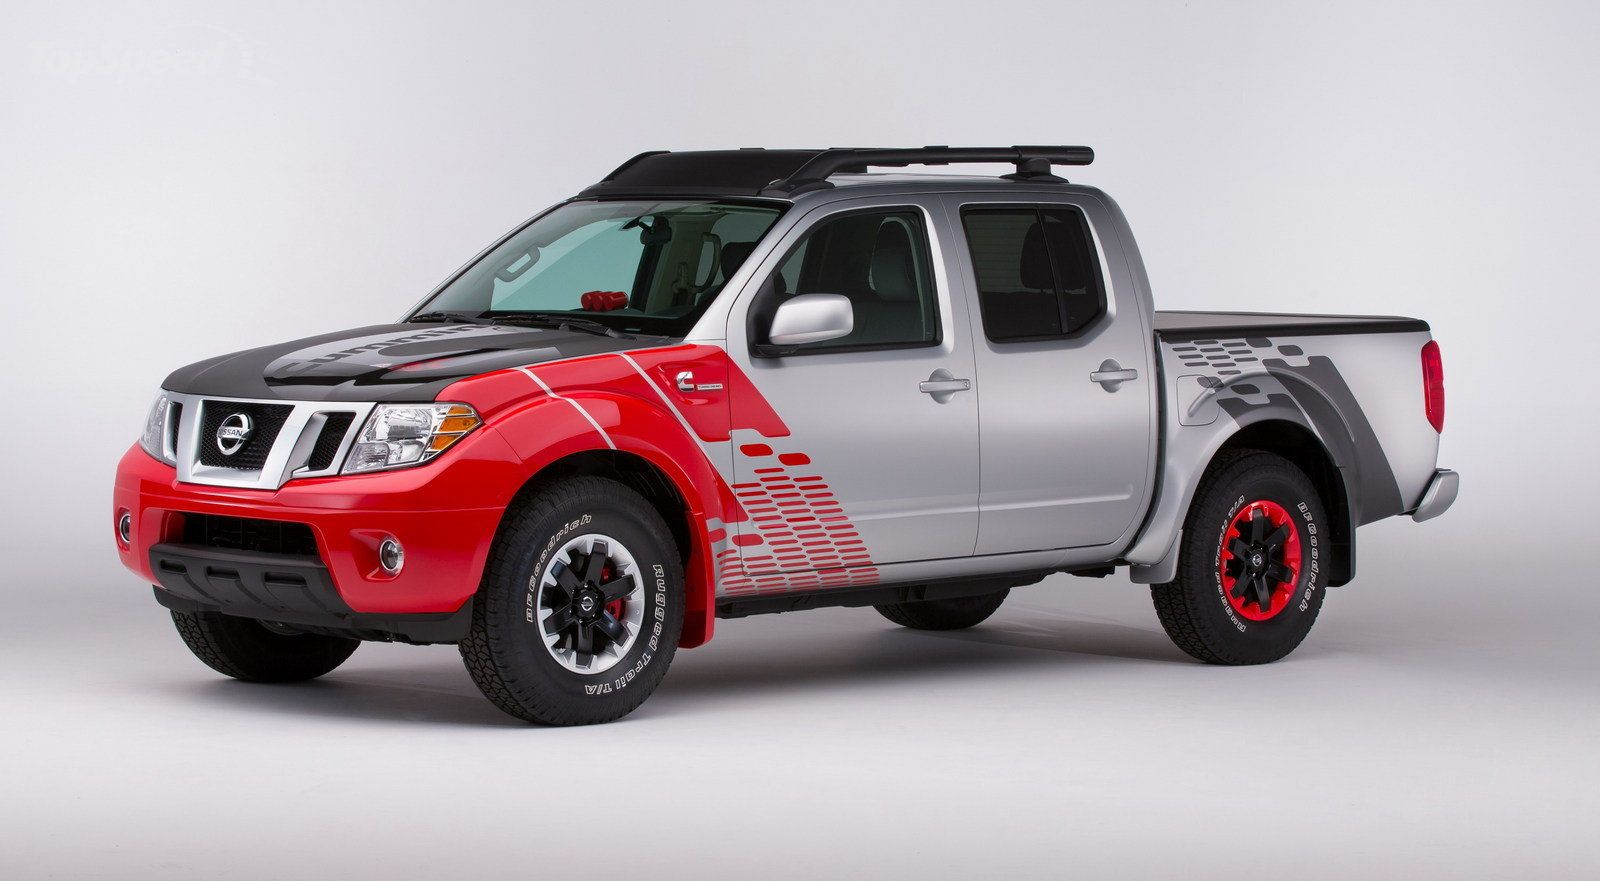 The nissan frontier diesel runner powered by cummins is not your typical mars rover like concept vehicle it is a project truck created to test the waters